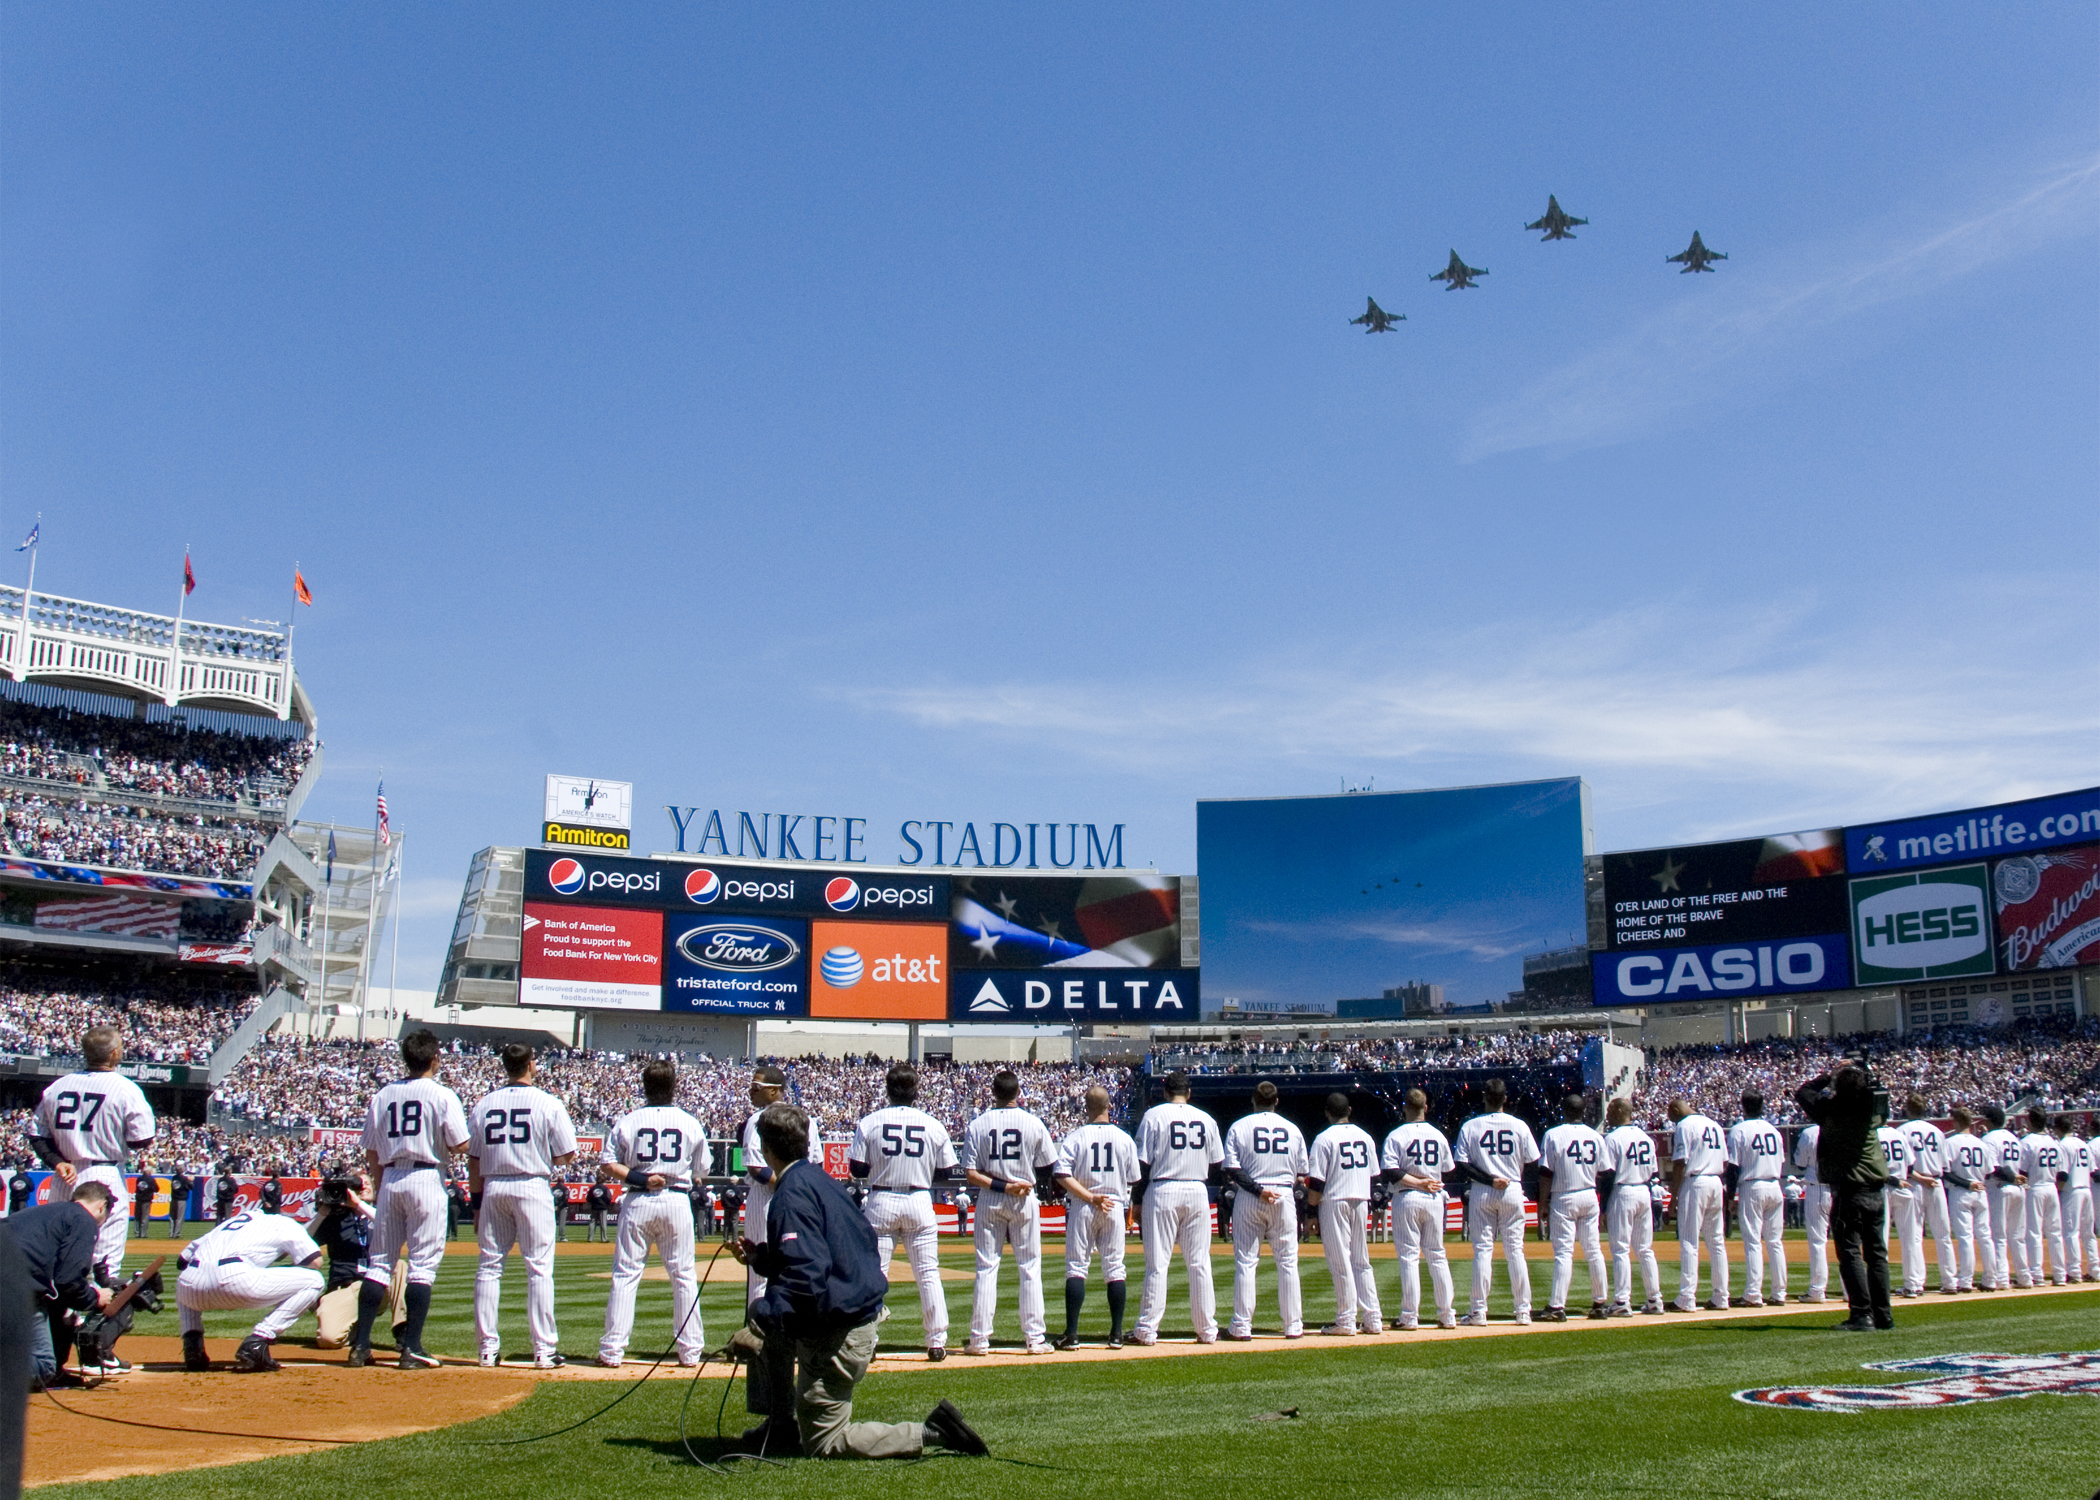 Yankee Stadium Opening Day Fly Over